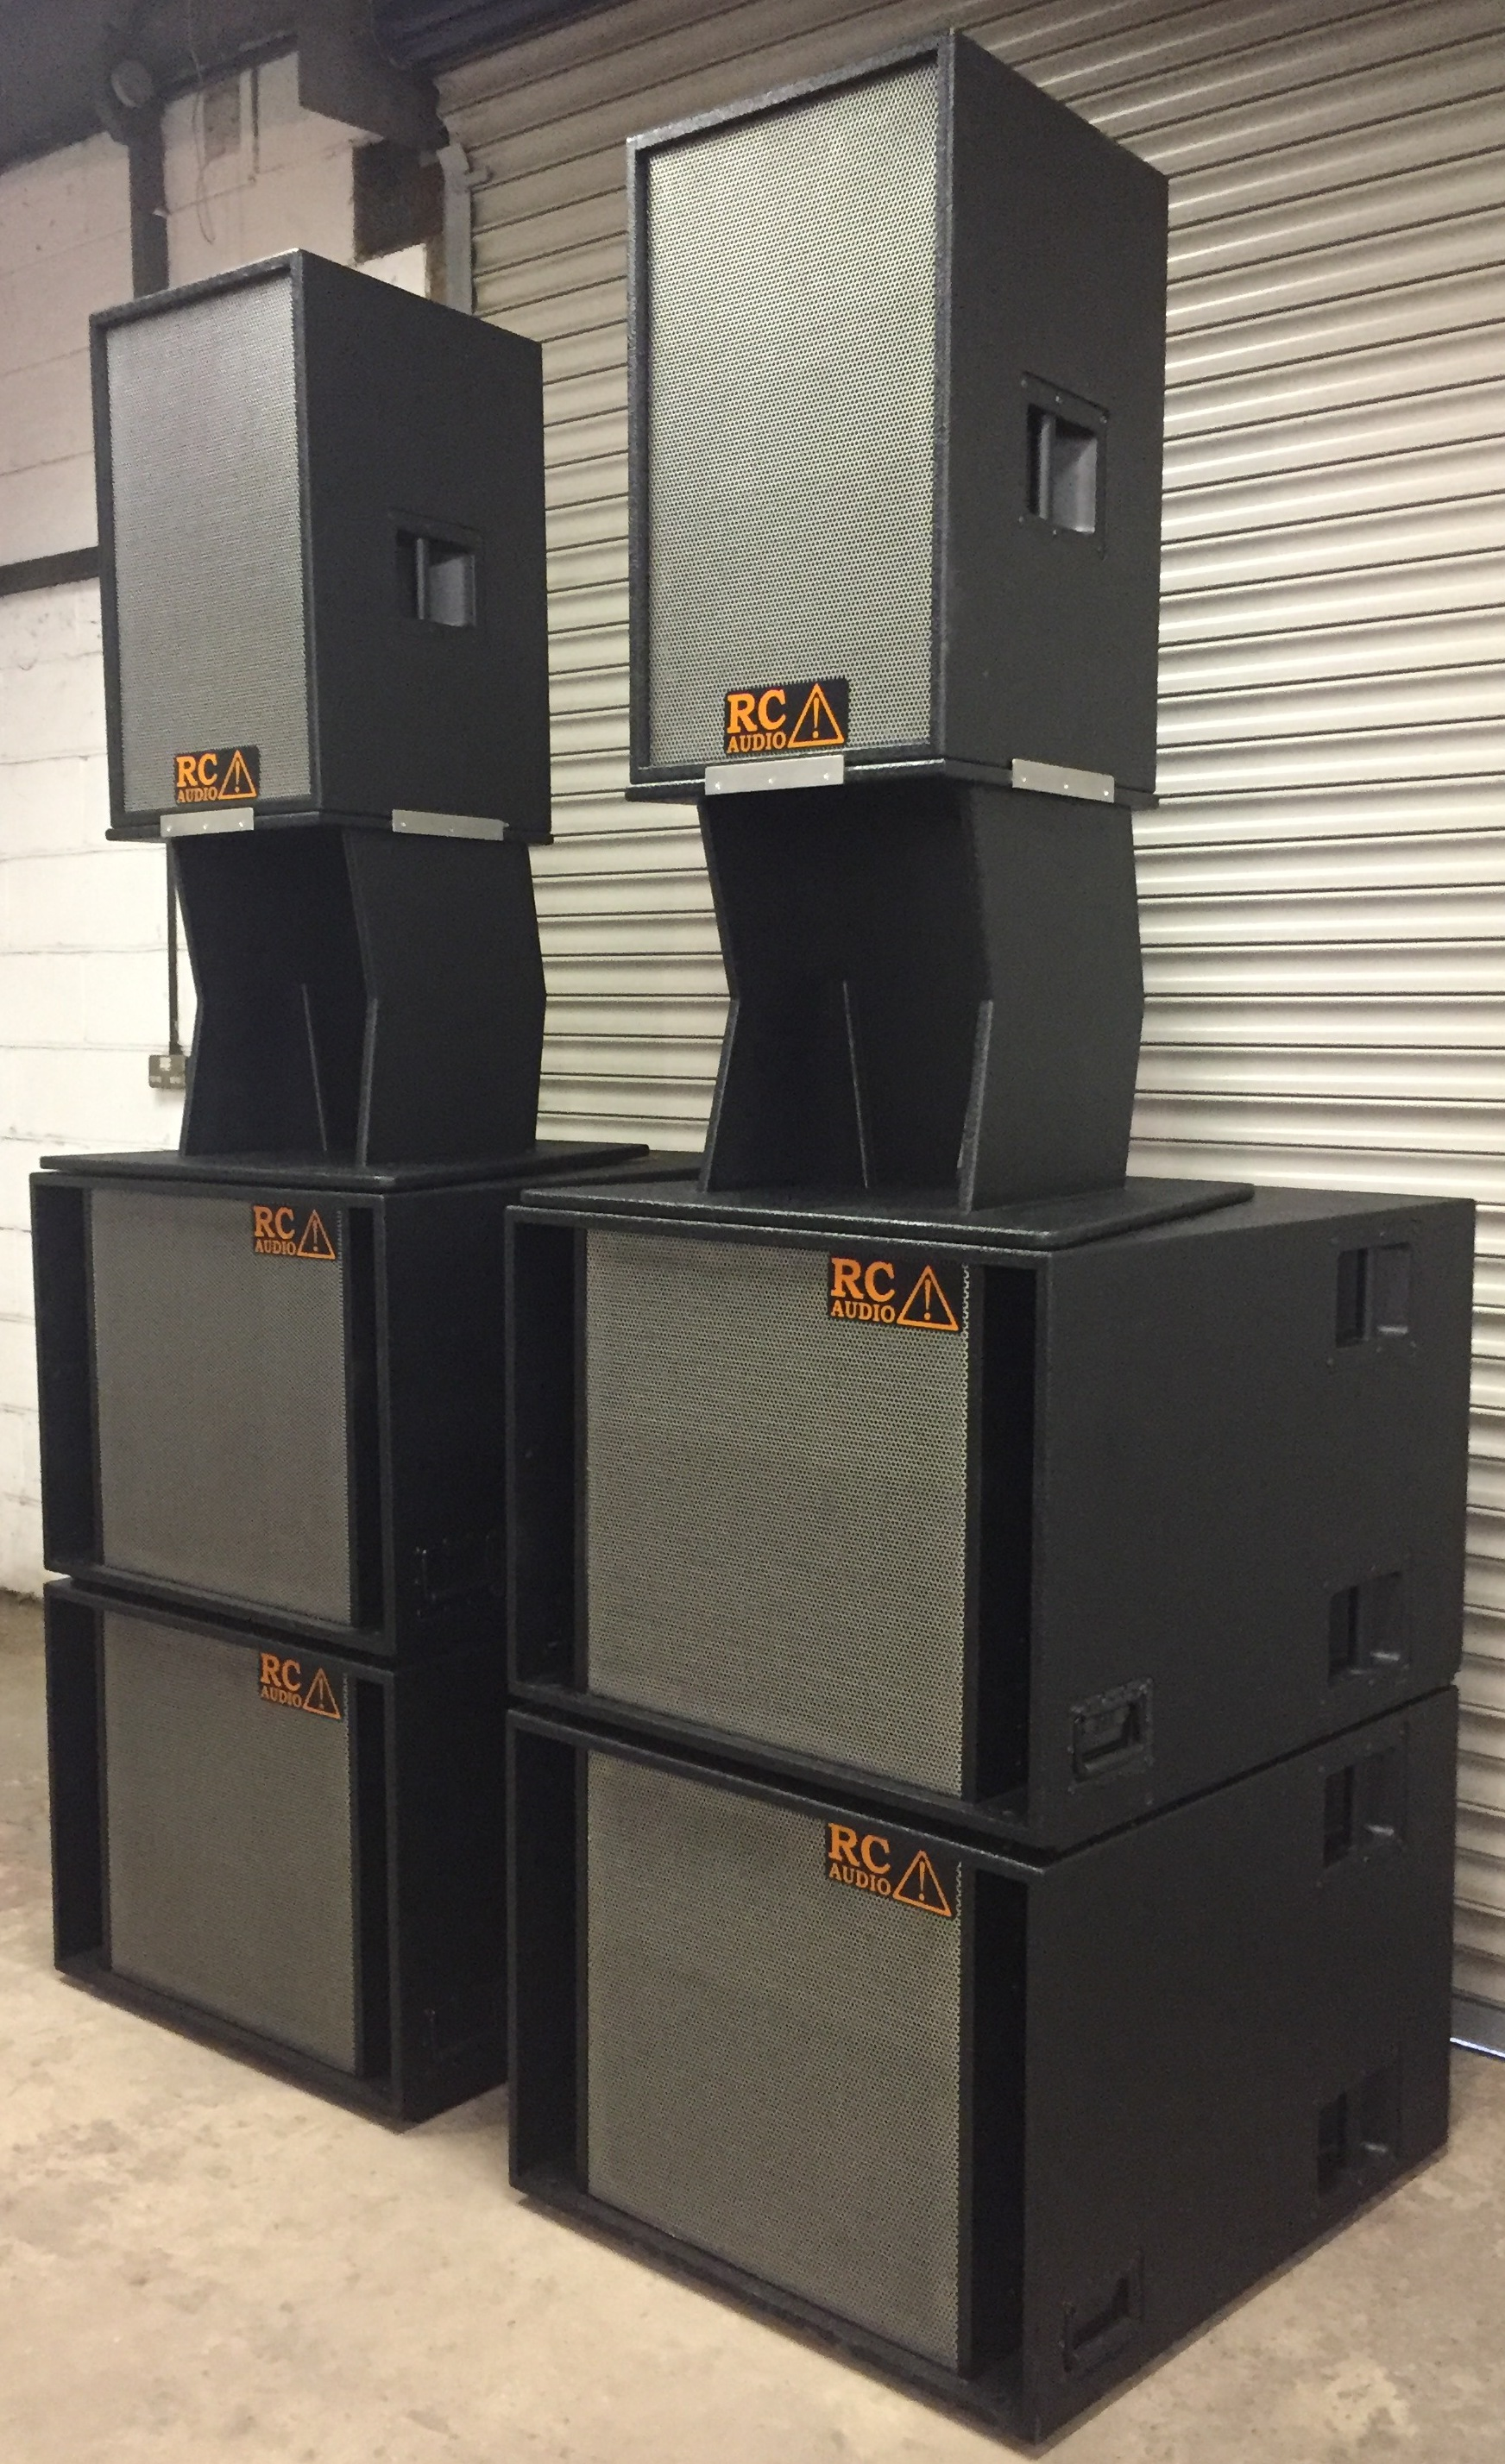 RC Audio Systems stacks